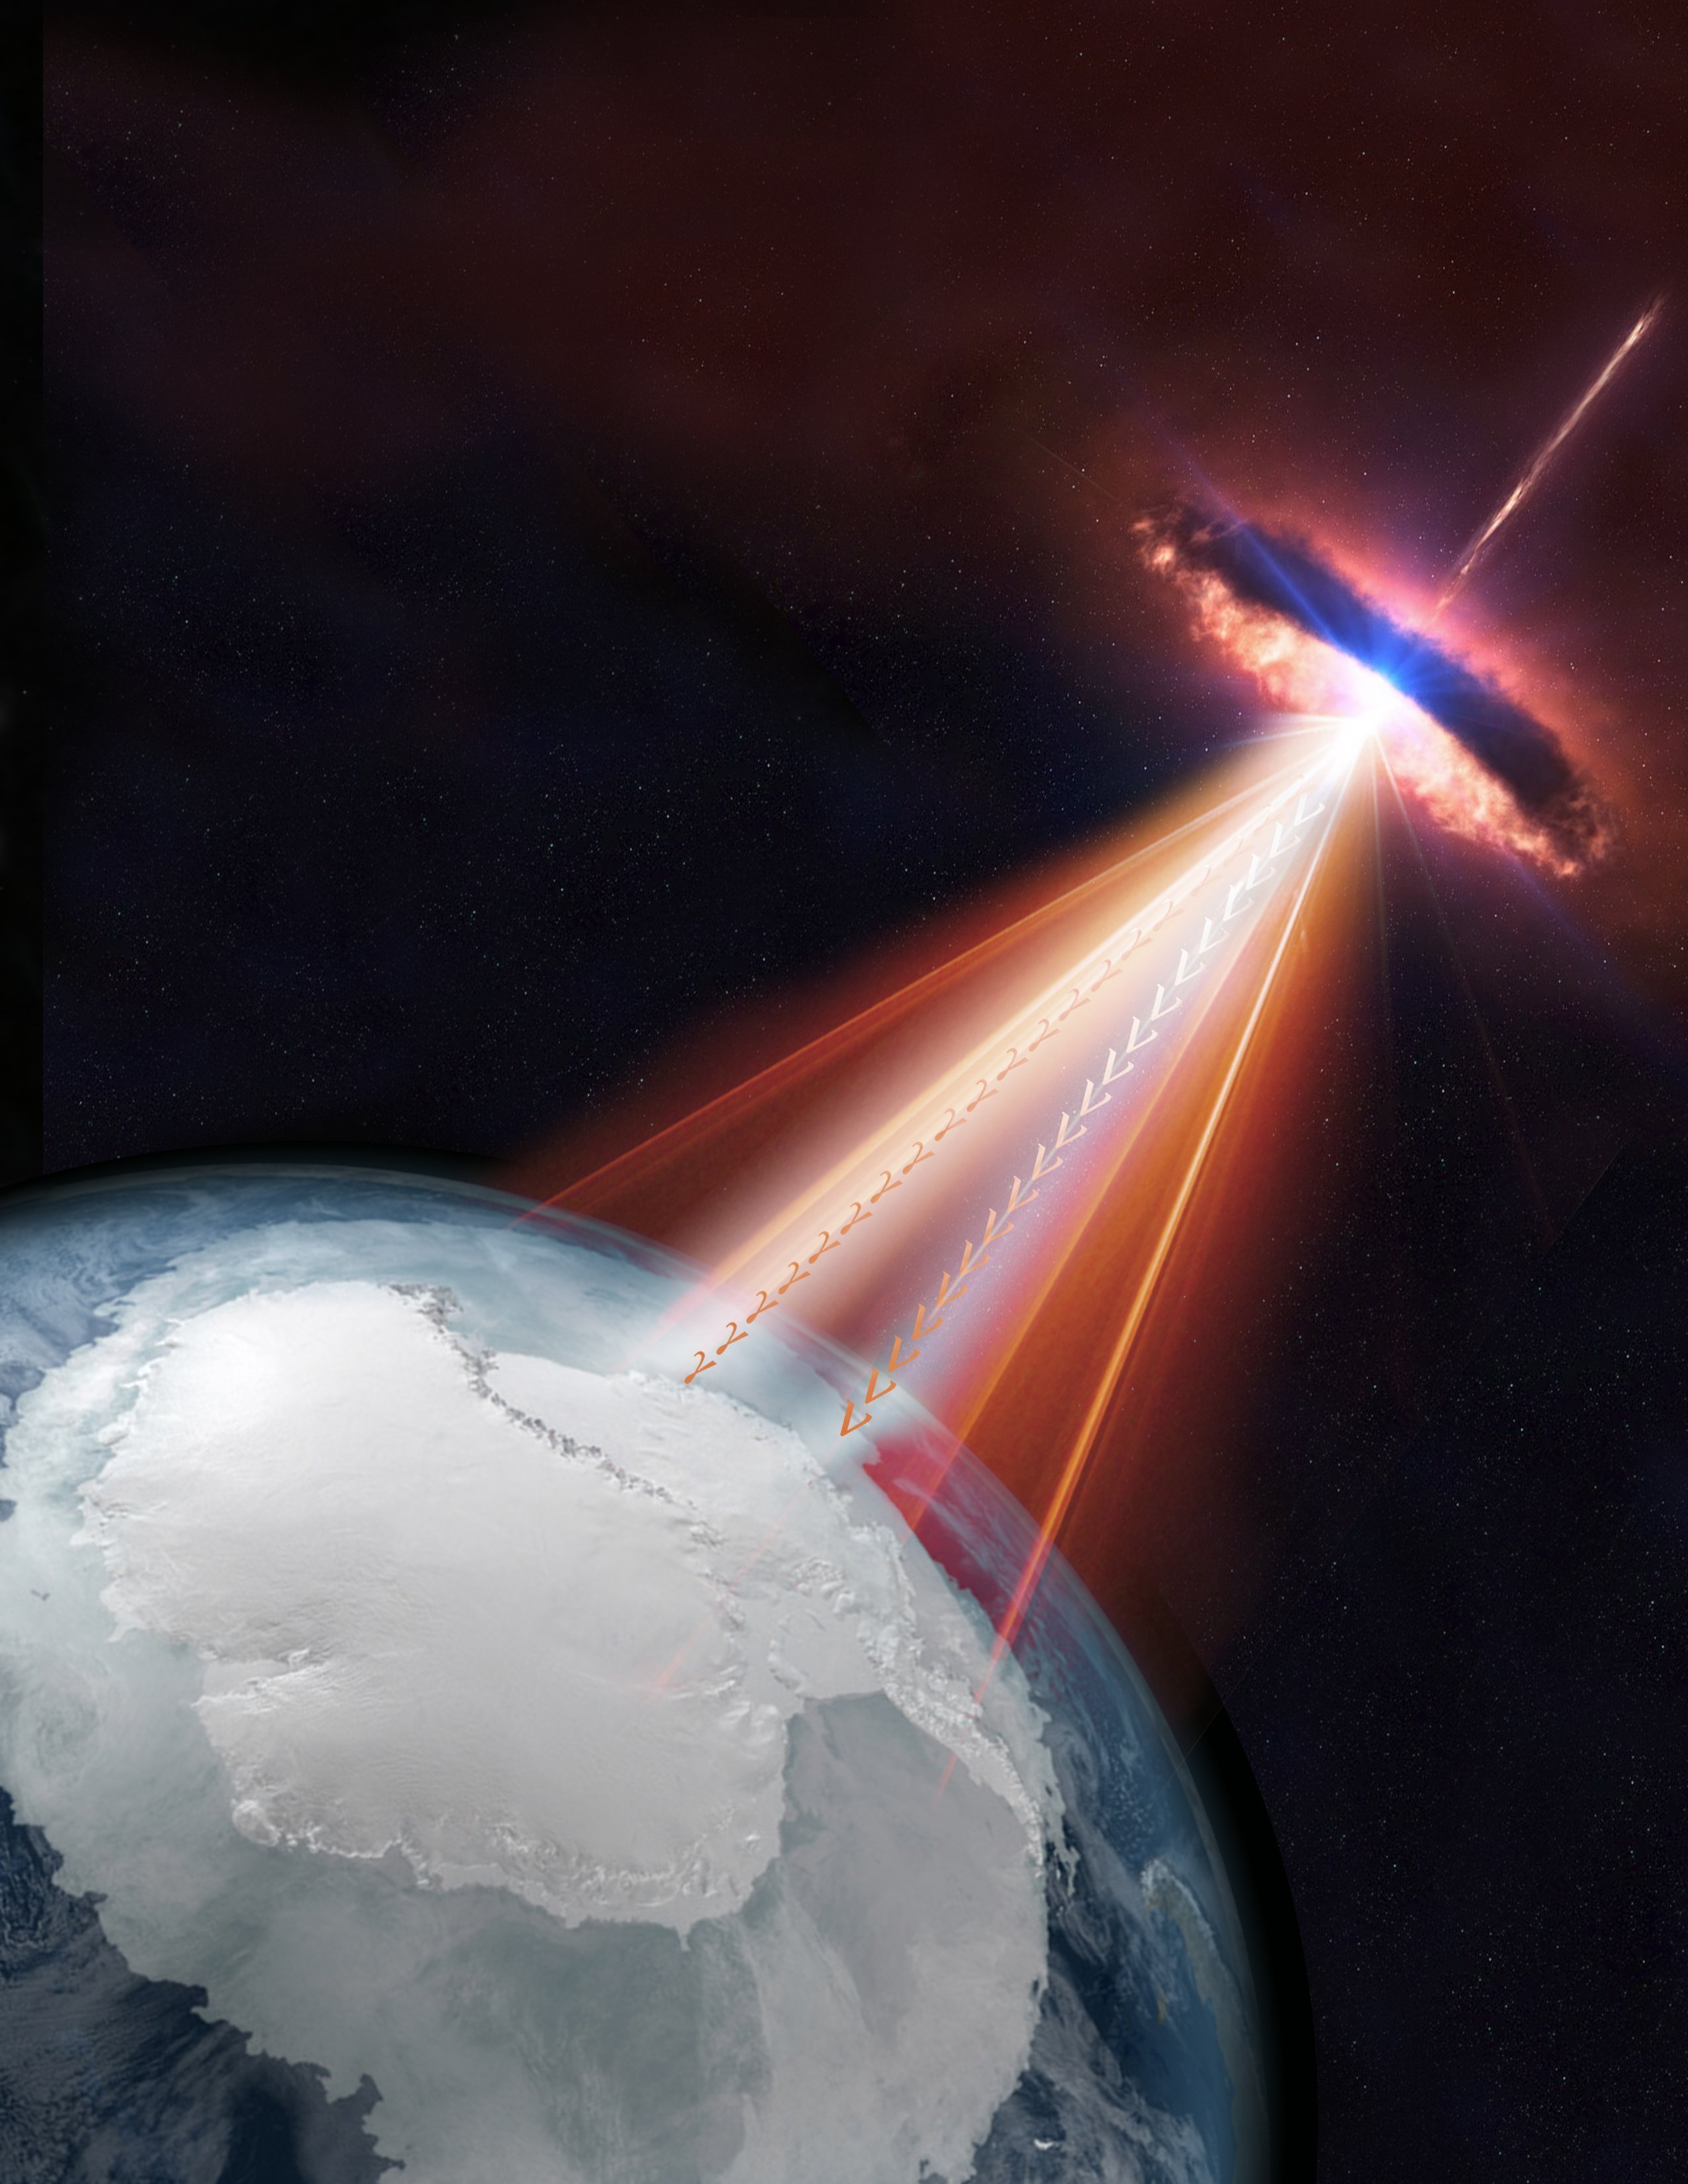 Blazars are a type of active galaxy with one of its jets pointing toward us. In this artistic rendering, a blazar emits both neutrinos and gamma rays could be detected by the IceCube Neutrino Observatory as well as by other telescopes on Earth and in...